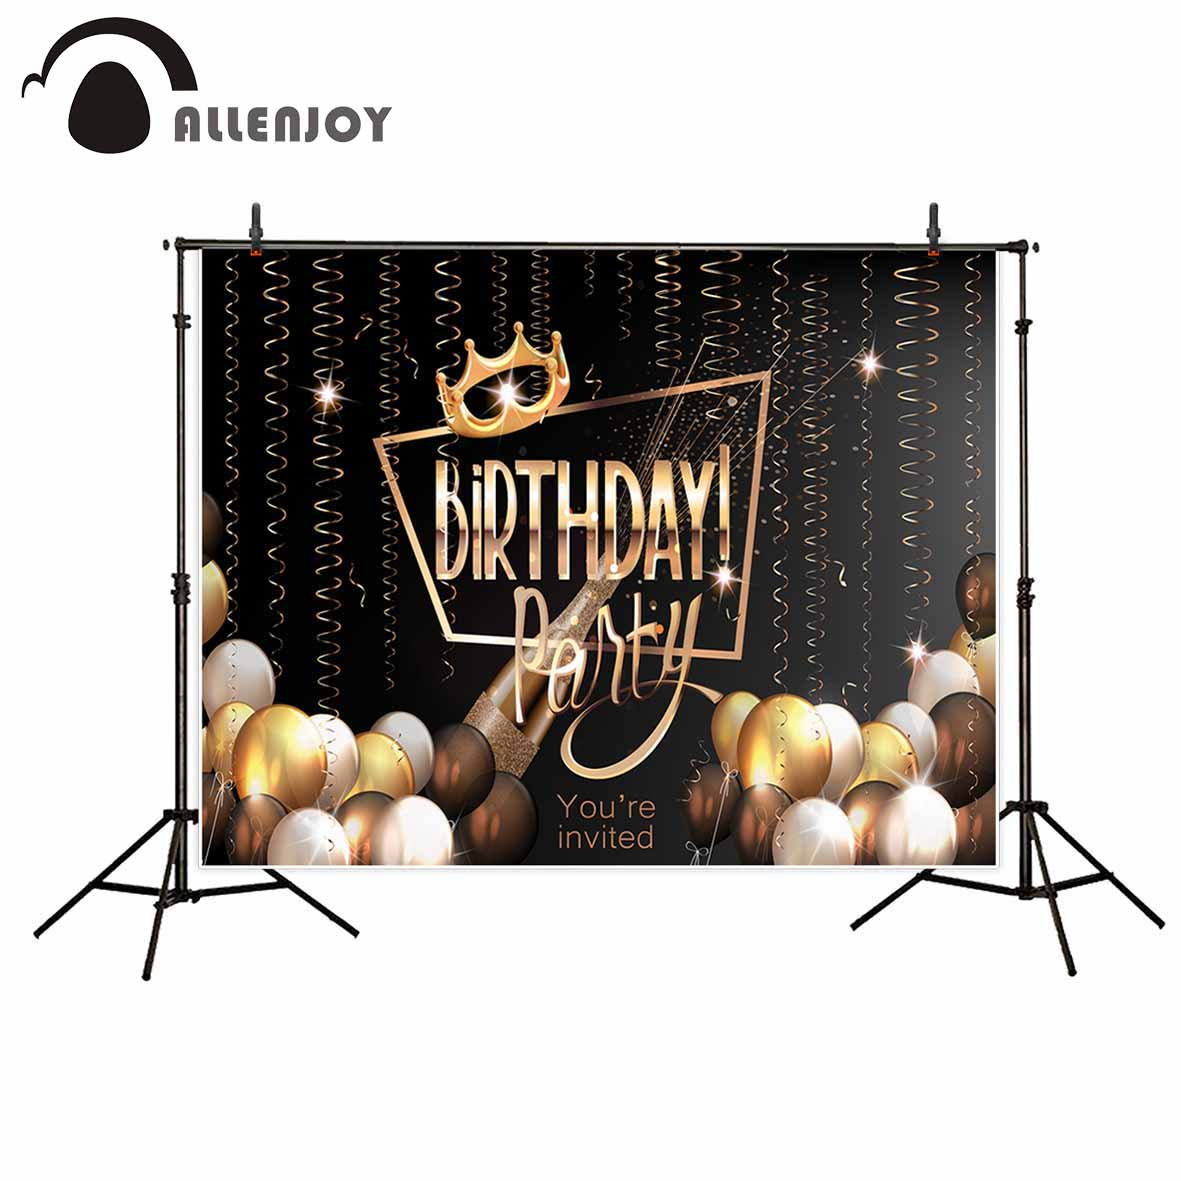 Allenjoy vinyl photographic background Ball Ribbon Birthday Crown Custom Party new backdrop photocall photo printed customize allenjoy photography backdrop snow winter house christmas tree party children new background photocall customize photo printed